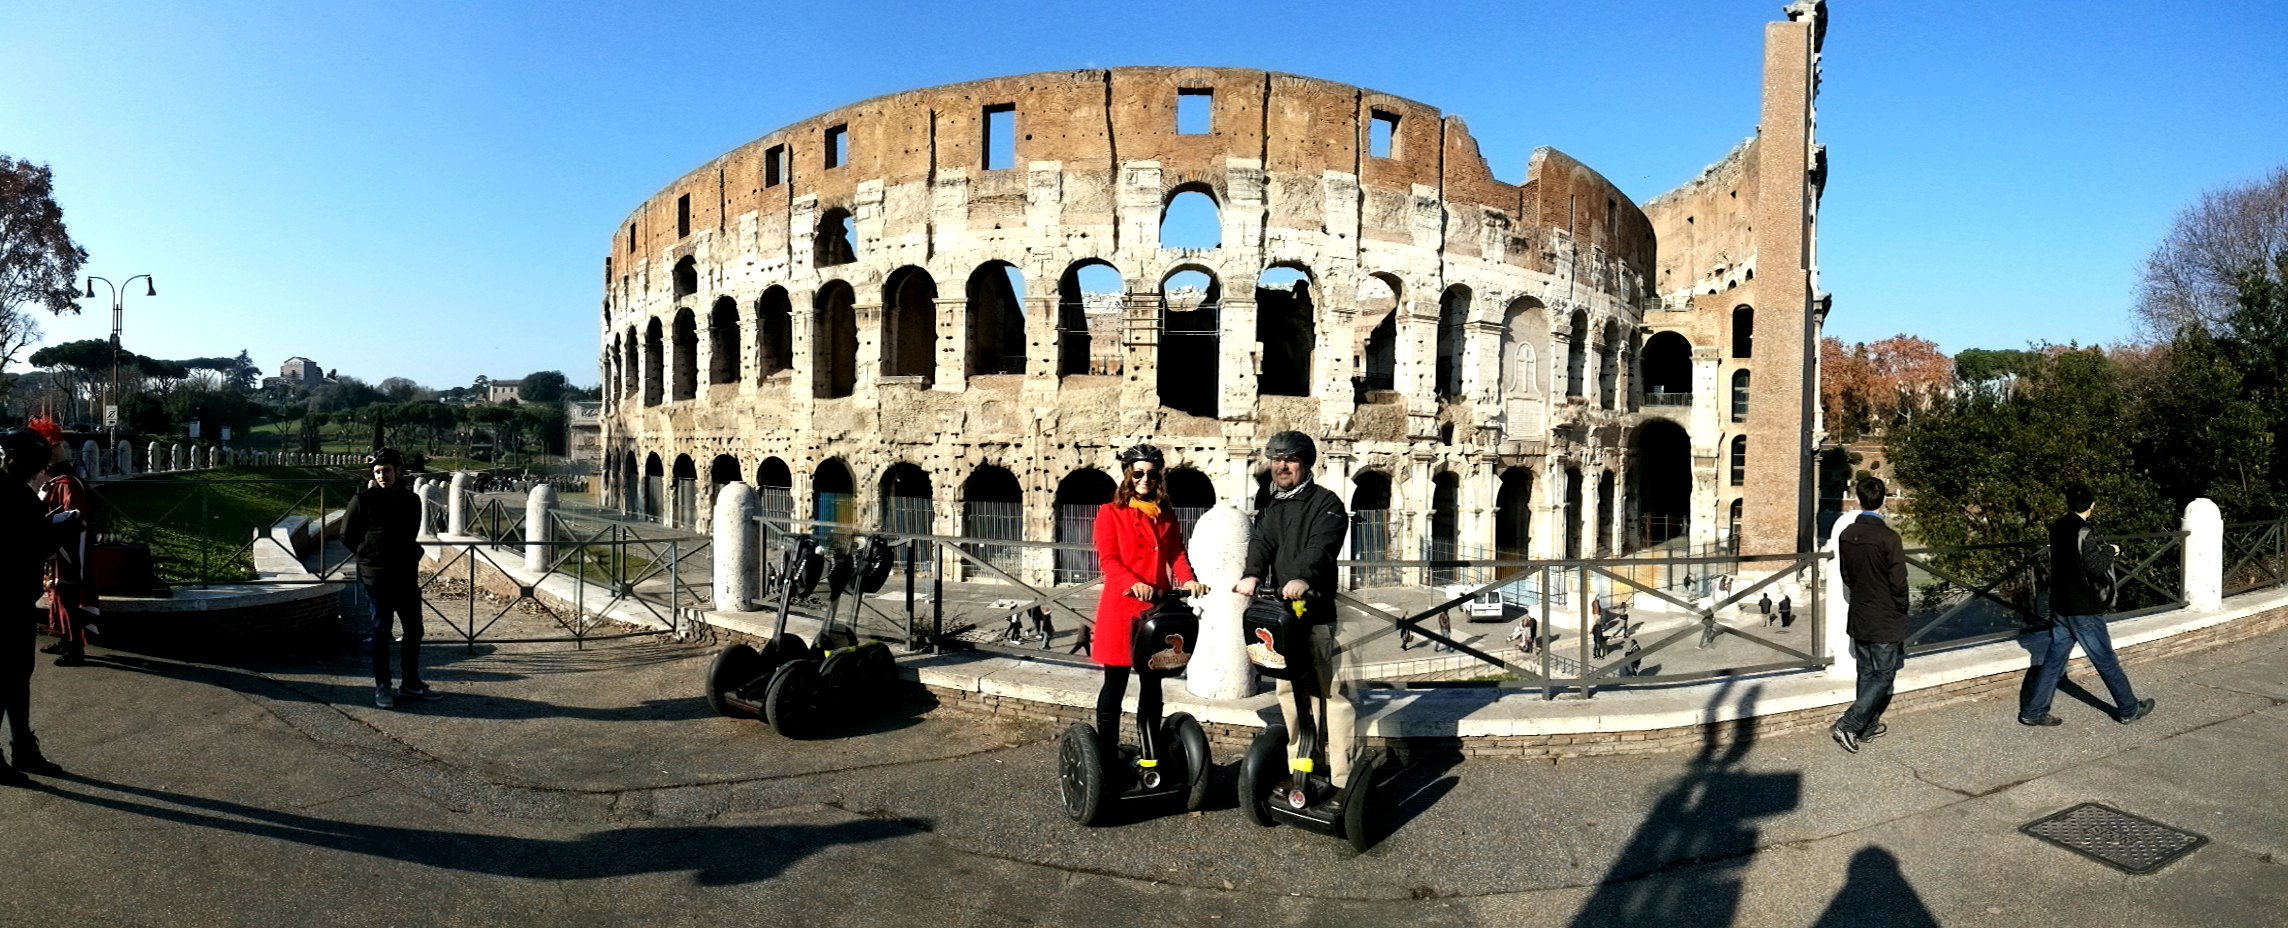 Segway joy at the Colosseum.